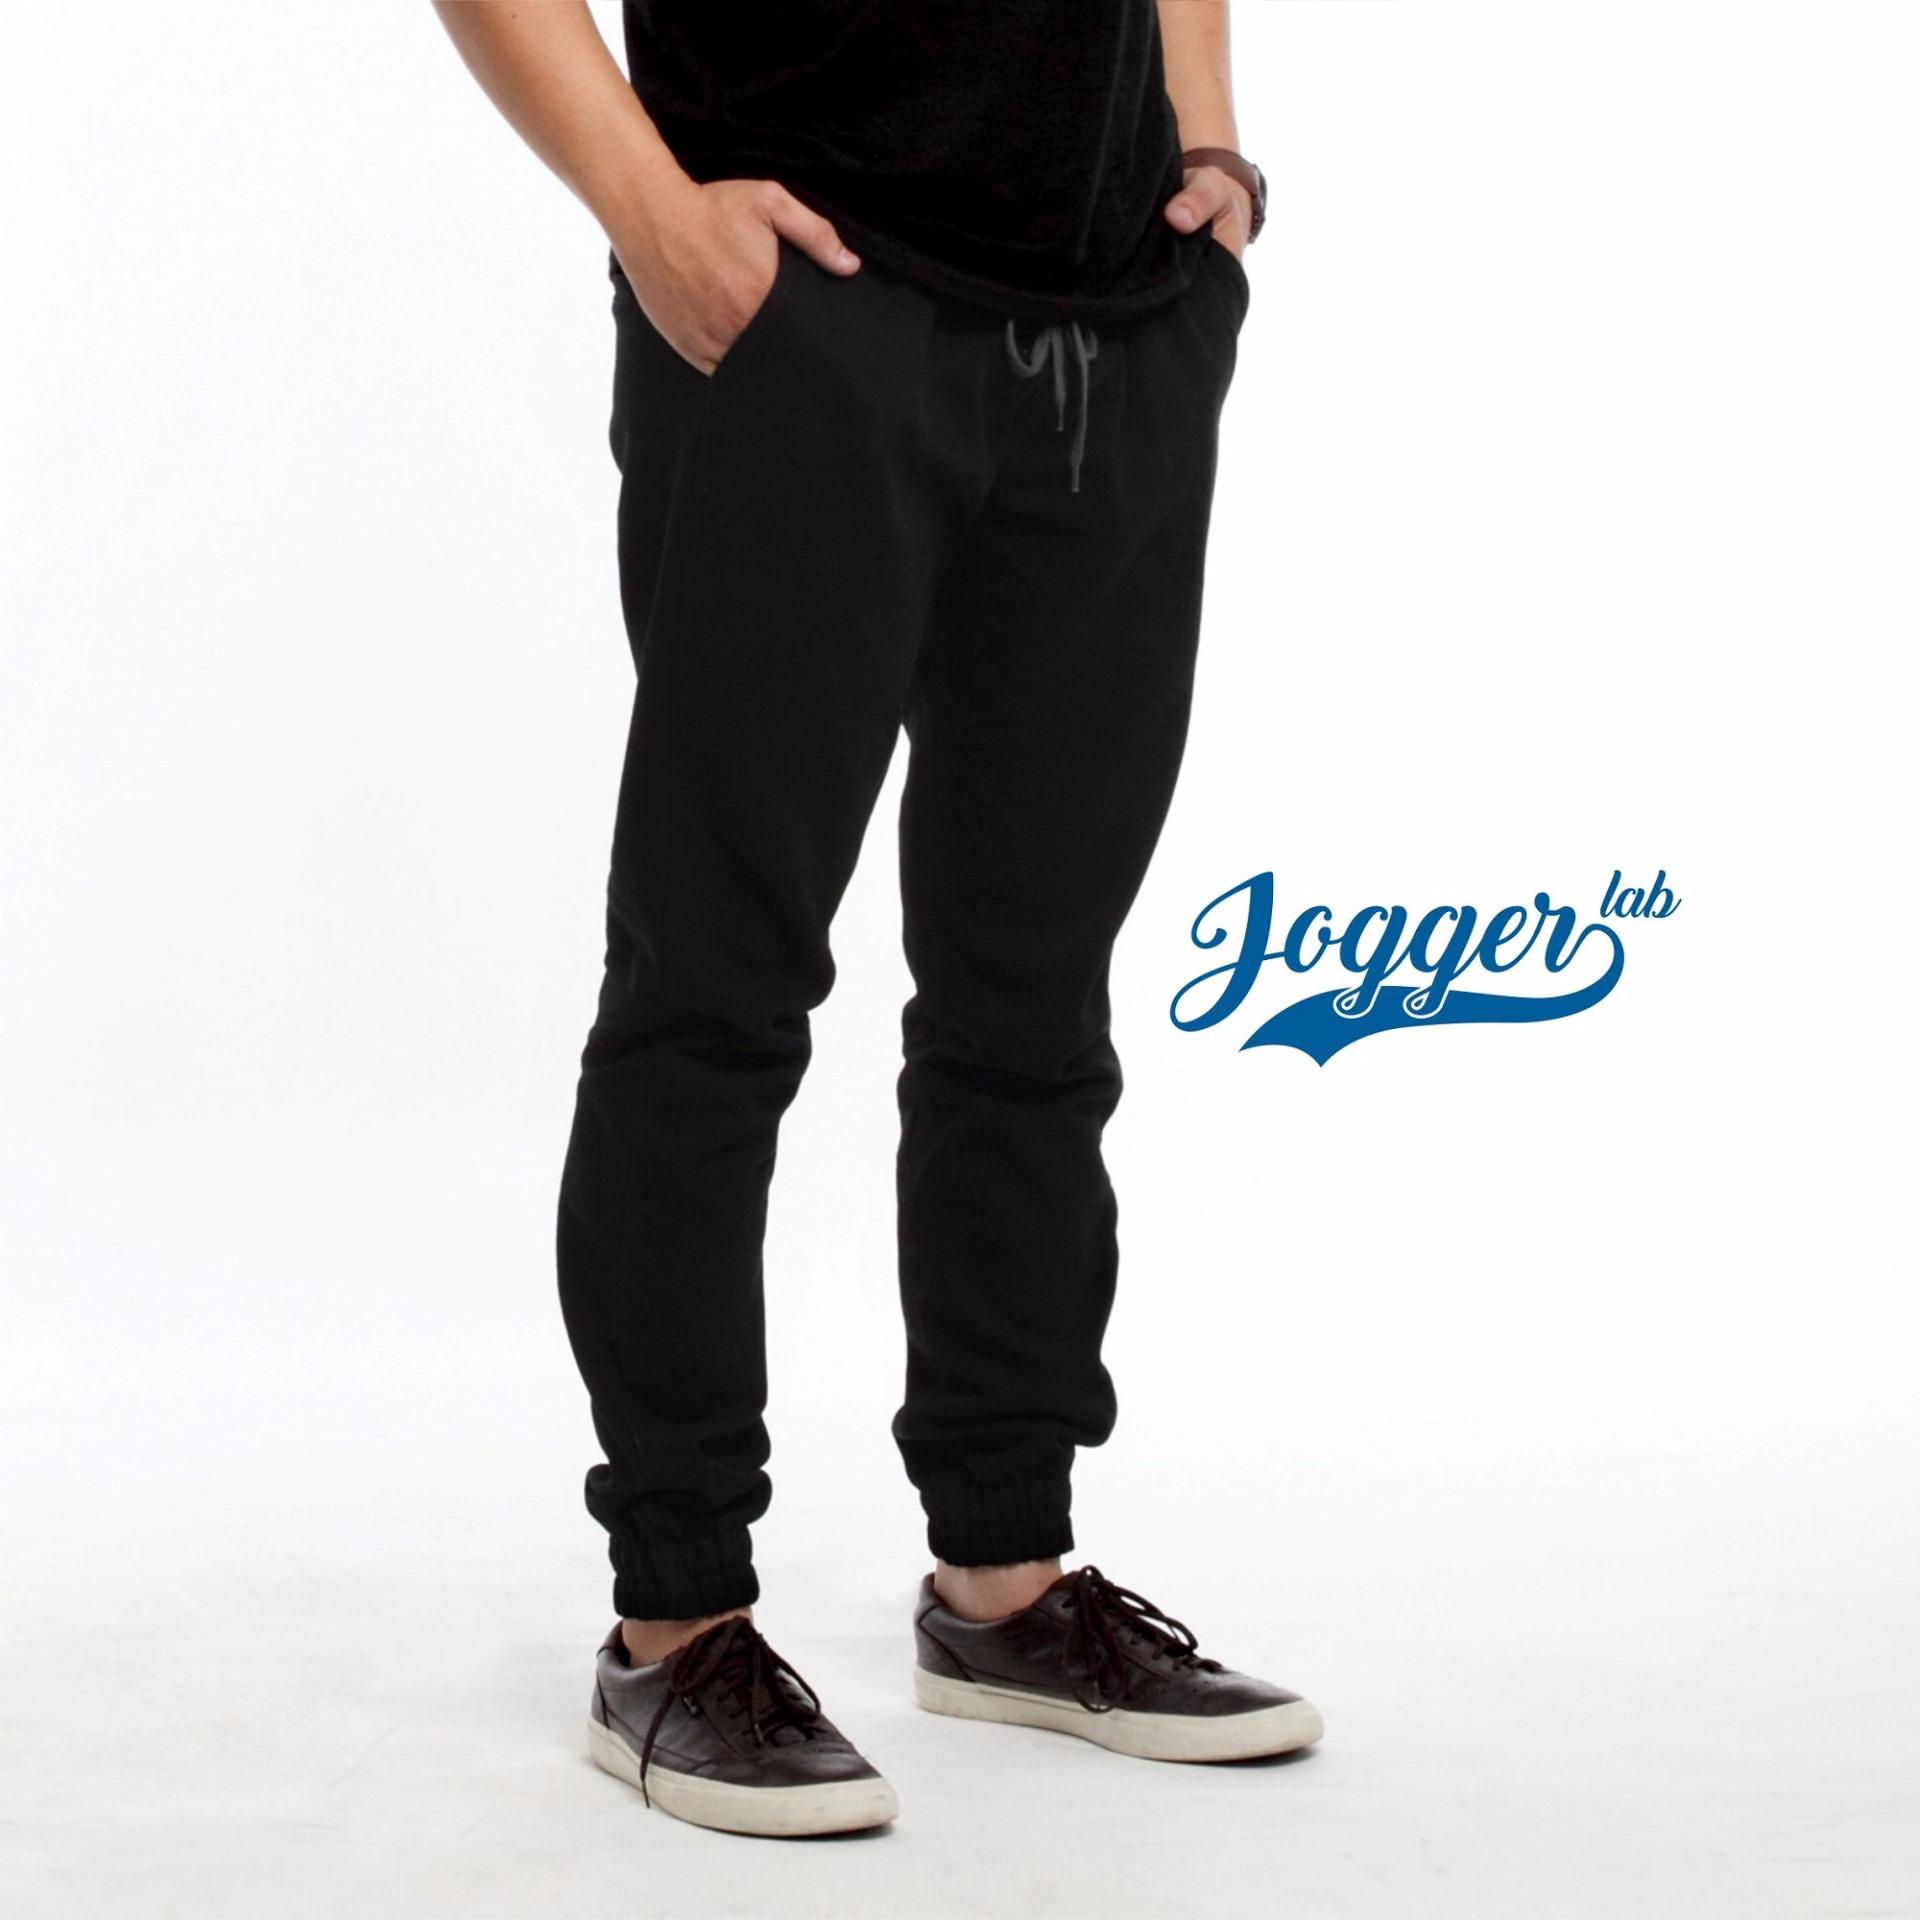 Beli Jogger Lab Jogger Jeans Full Black Murah Di Indonesia